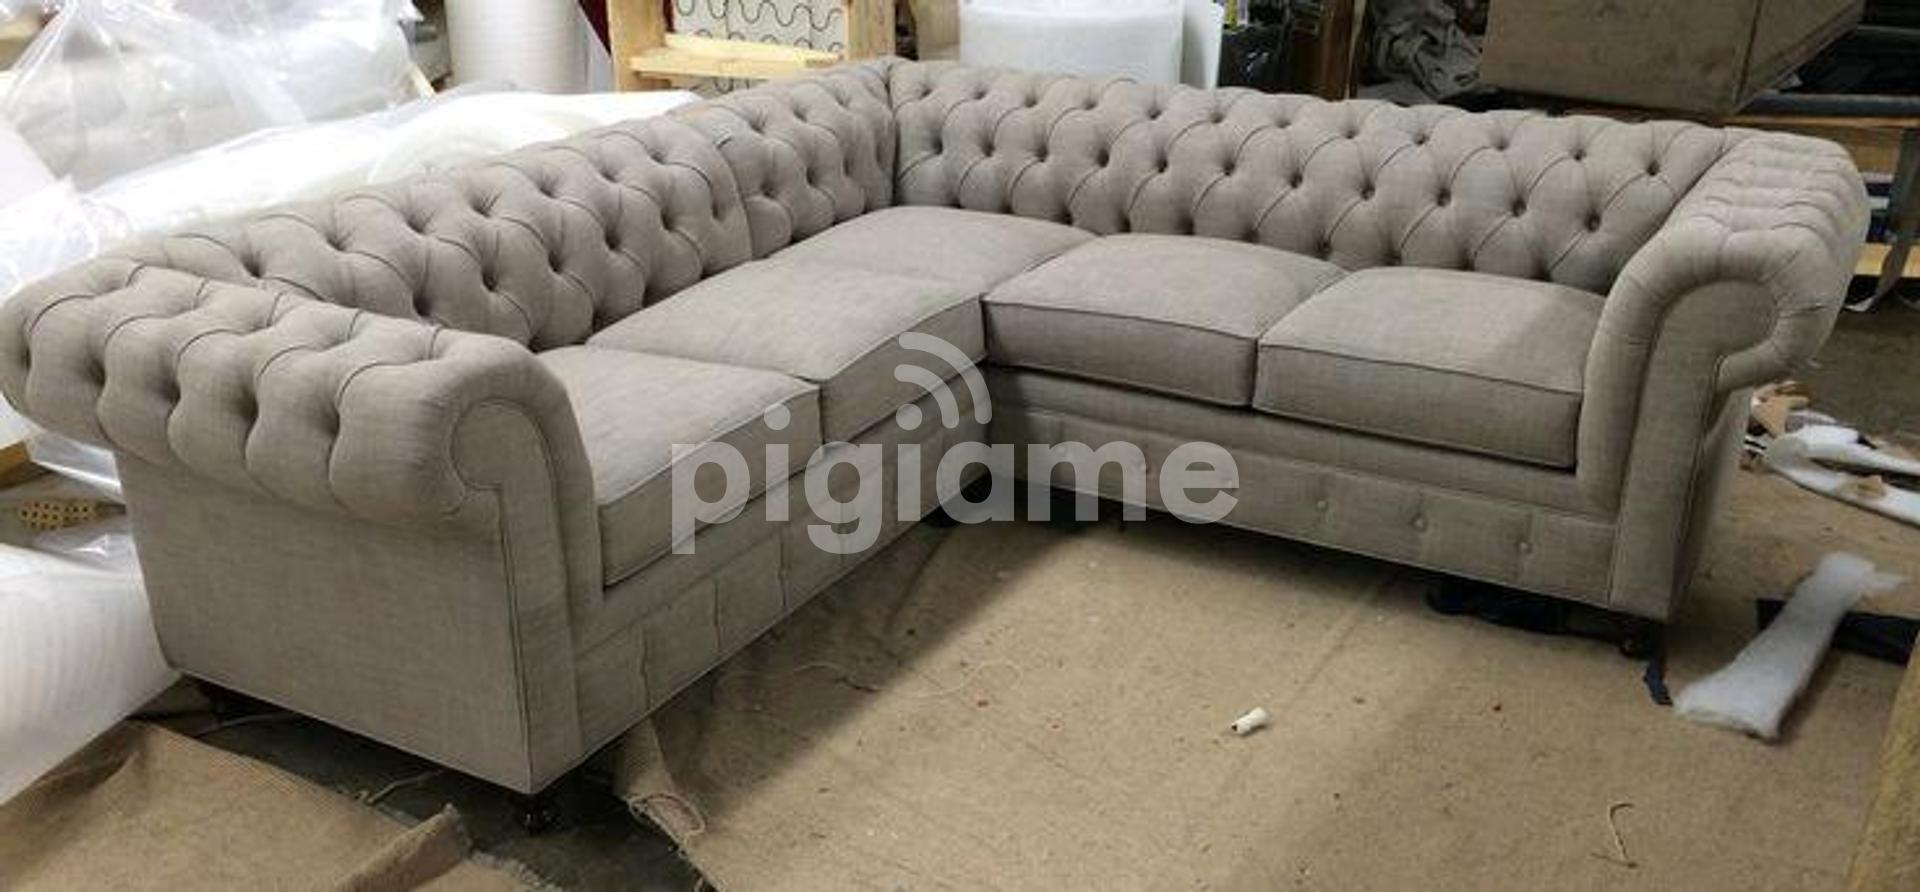 Five Seater Beige Sofa Set L Shaped Chesterfield Sofas For Sale In Nairobi Kenya In Utawala Pigiame